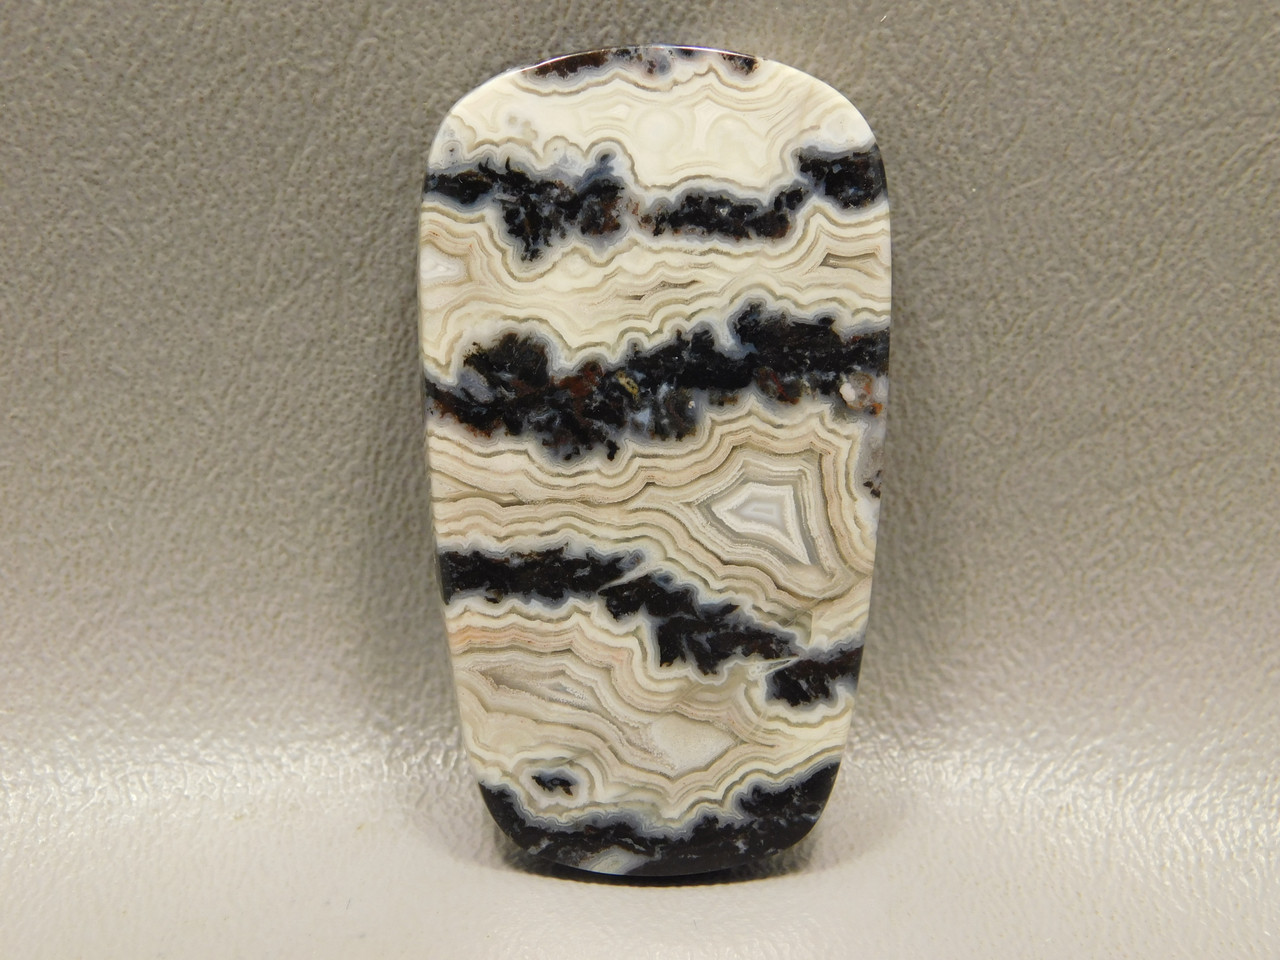 Crazy Lace Agate Ladder Shaped Stone Cabochon #17